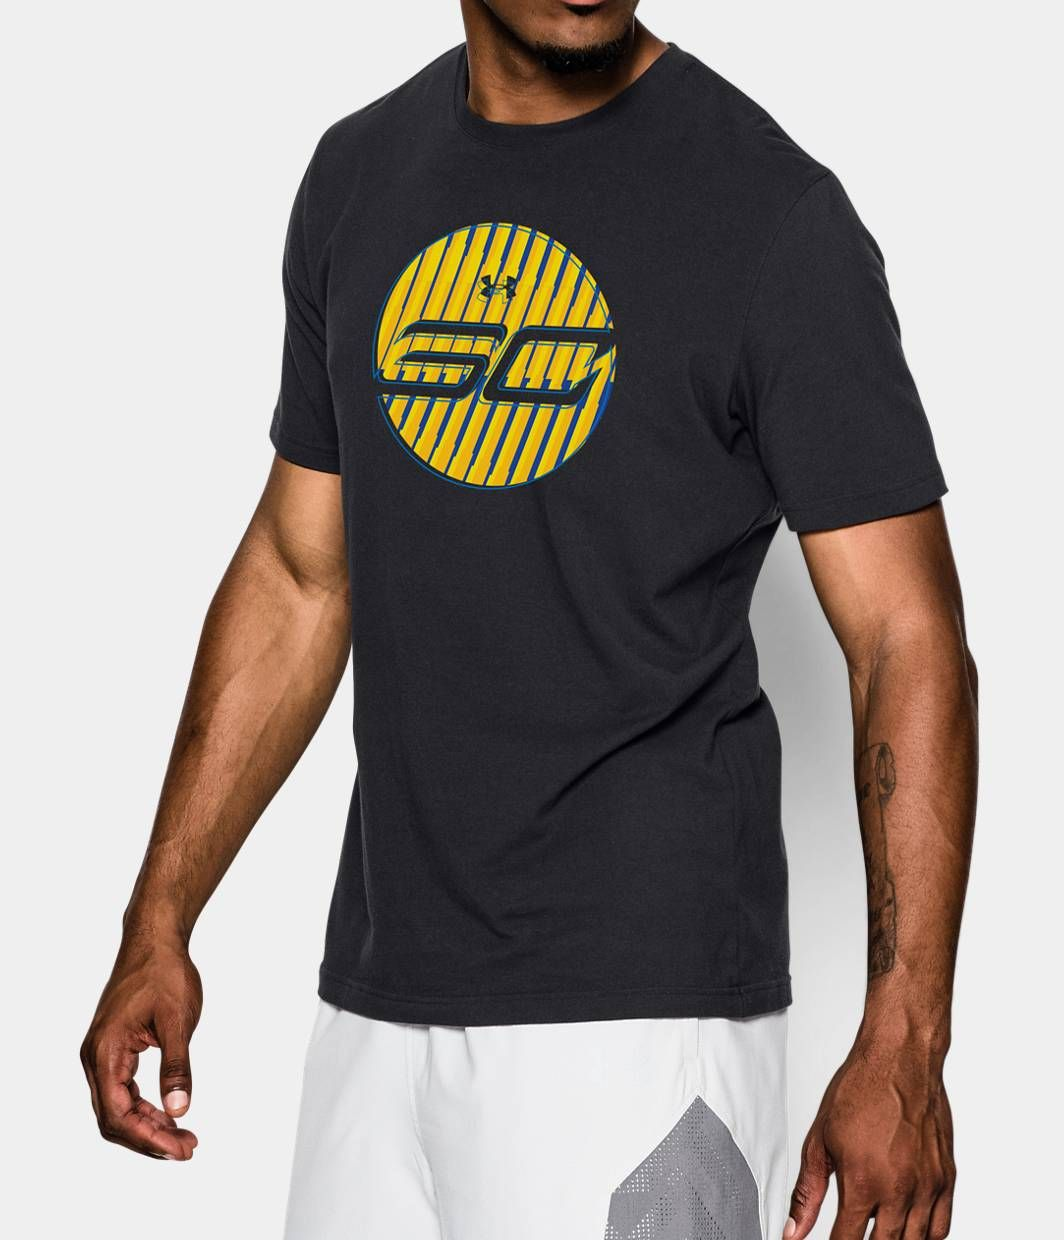 5c4b2bb949224 New Under Armour Mens UA Big Logo Chinese Basketball Loose Graphic Shirt  Size L